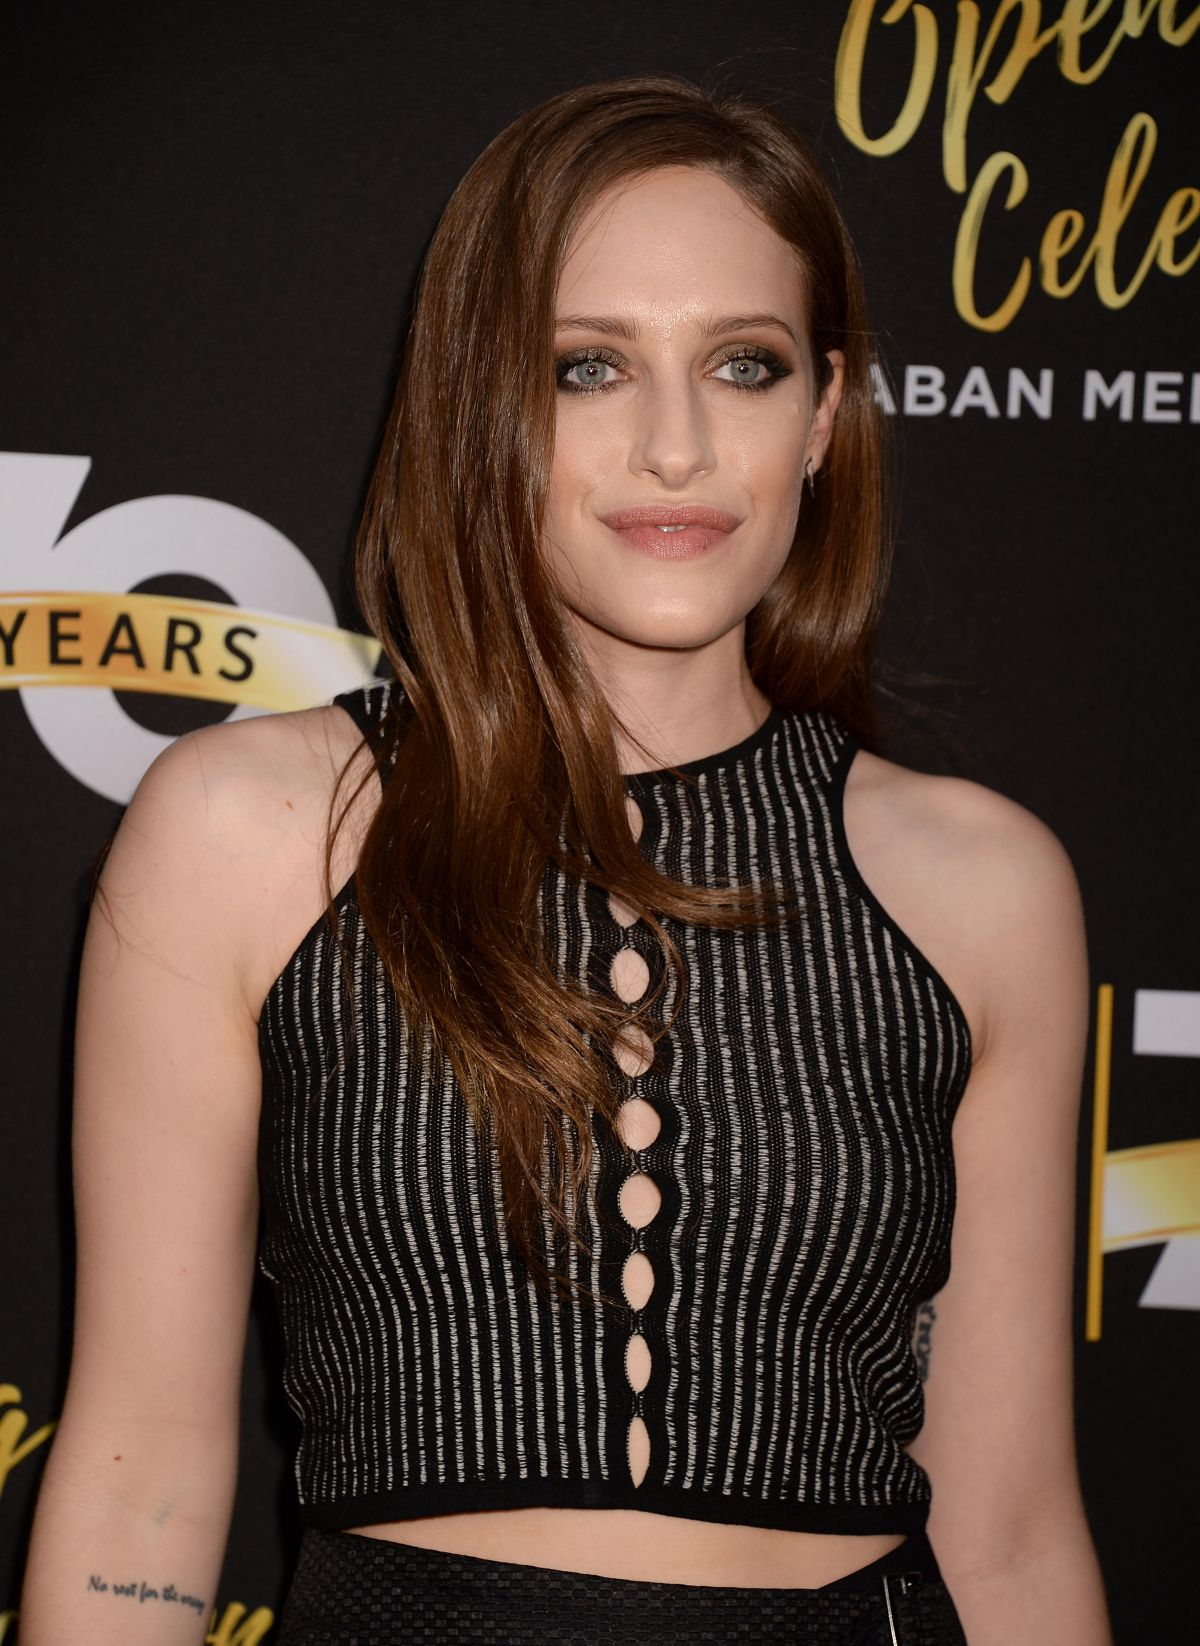 CARLY CHAIKIN at Television Academy 70th Anniversary Celebration in Los Angeles 06/02/2016